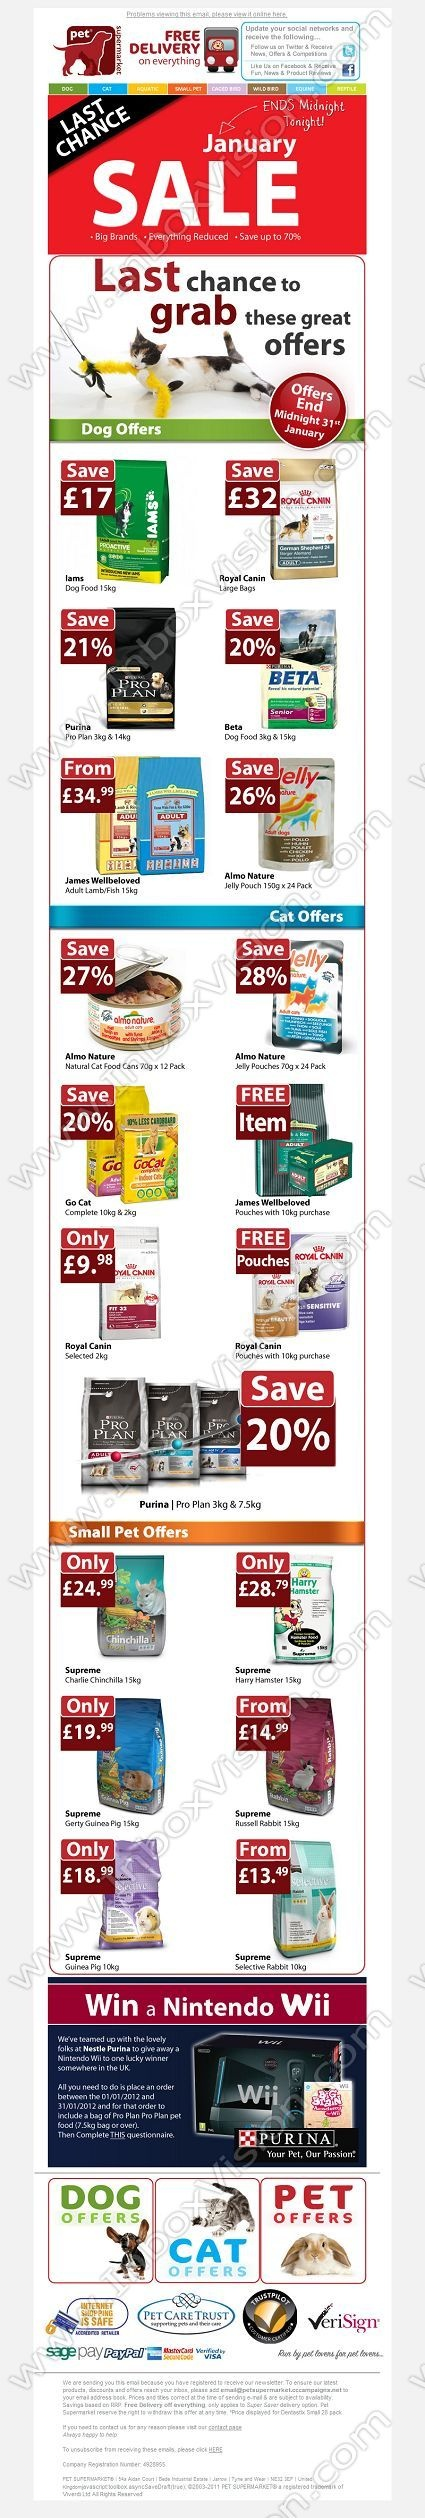 Brand - Pet Supermarket:  Subject:  Pet-Supermarket.co.uk - Last chance to save up 70% in the JanuarySALE | Must end today!